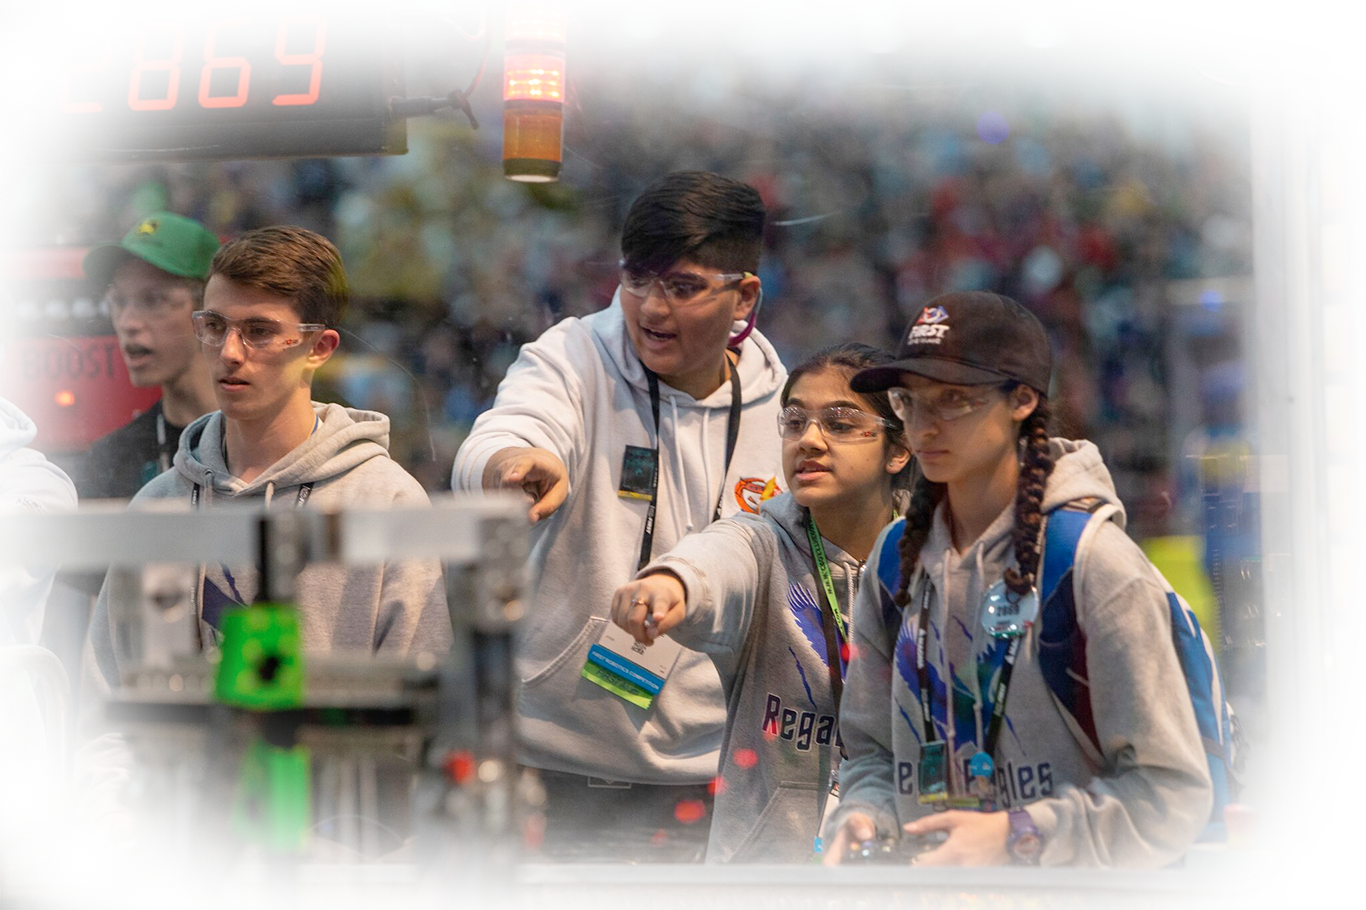 Students operating robots on FIRST Robotics Competition field